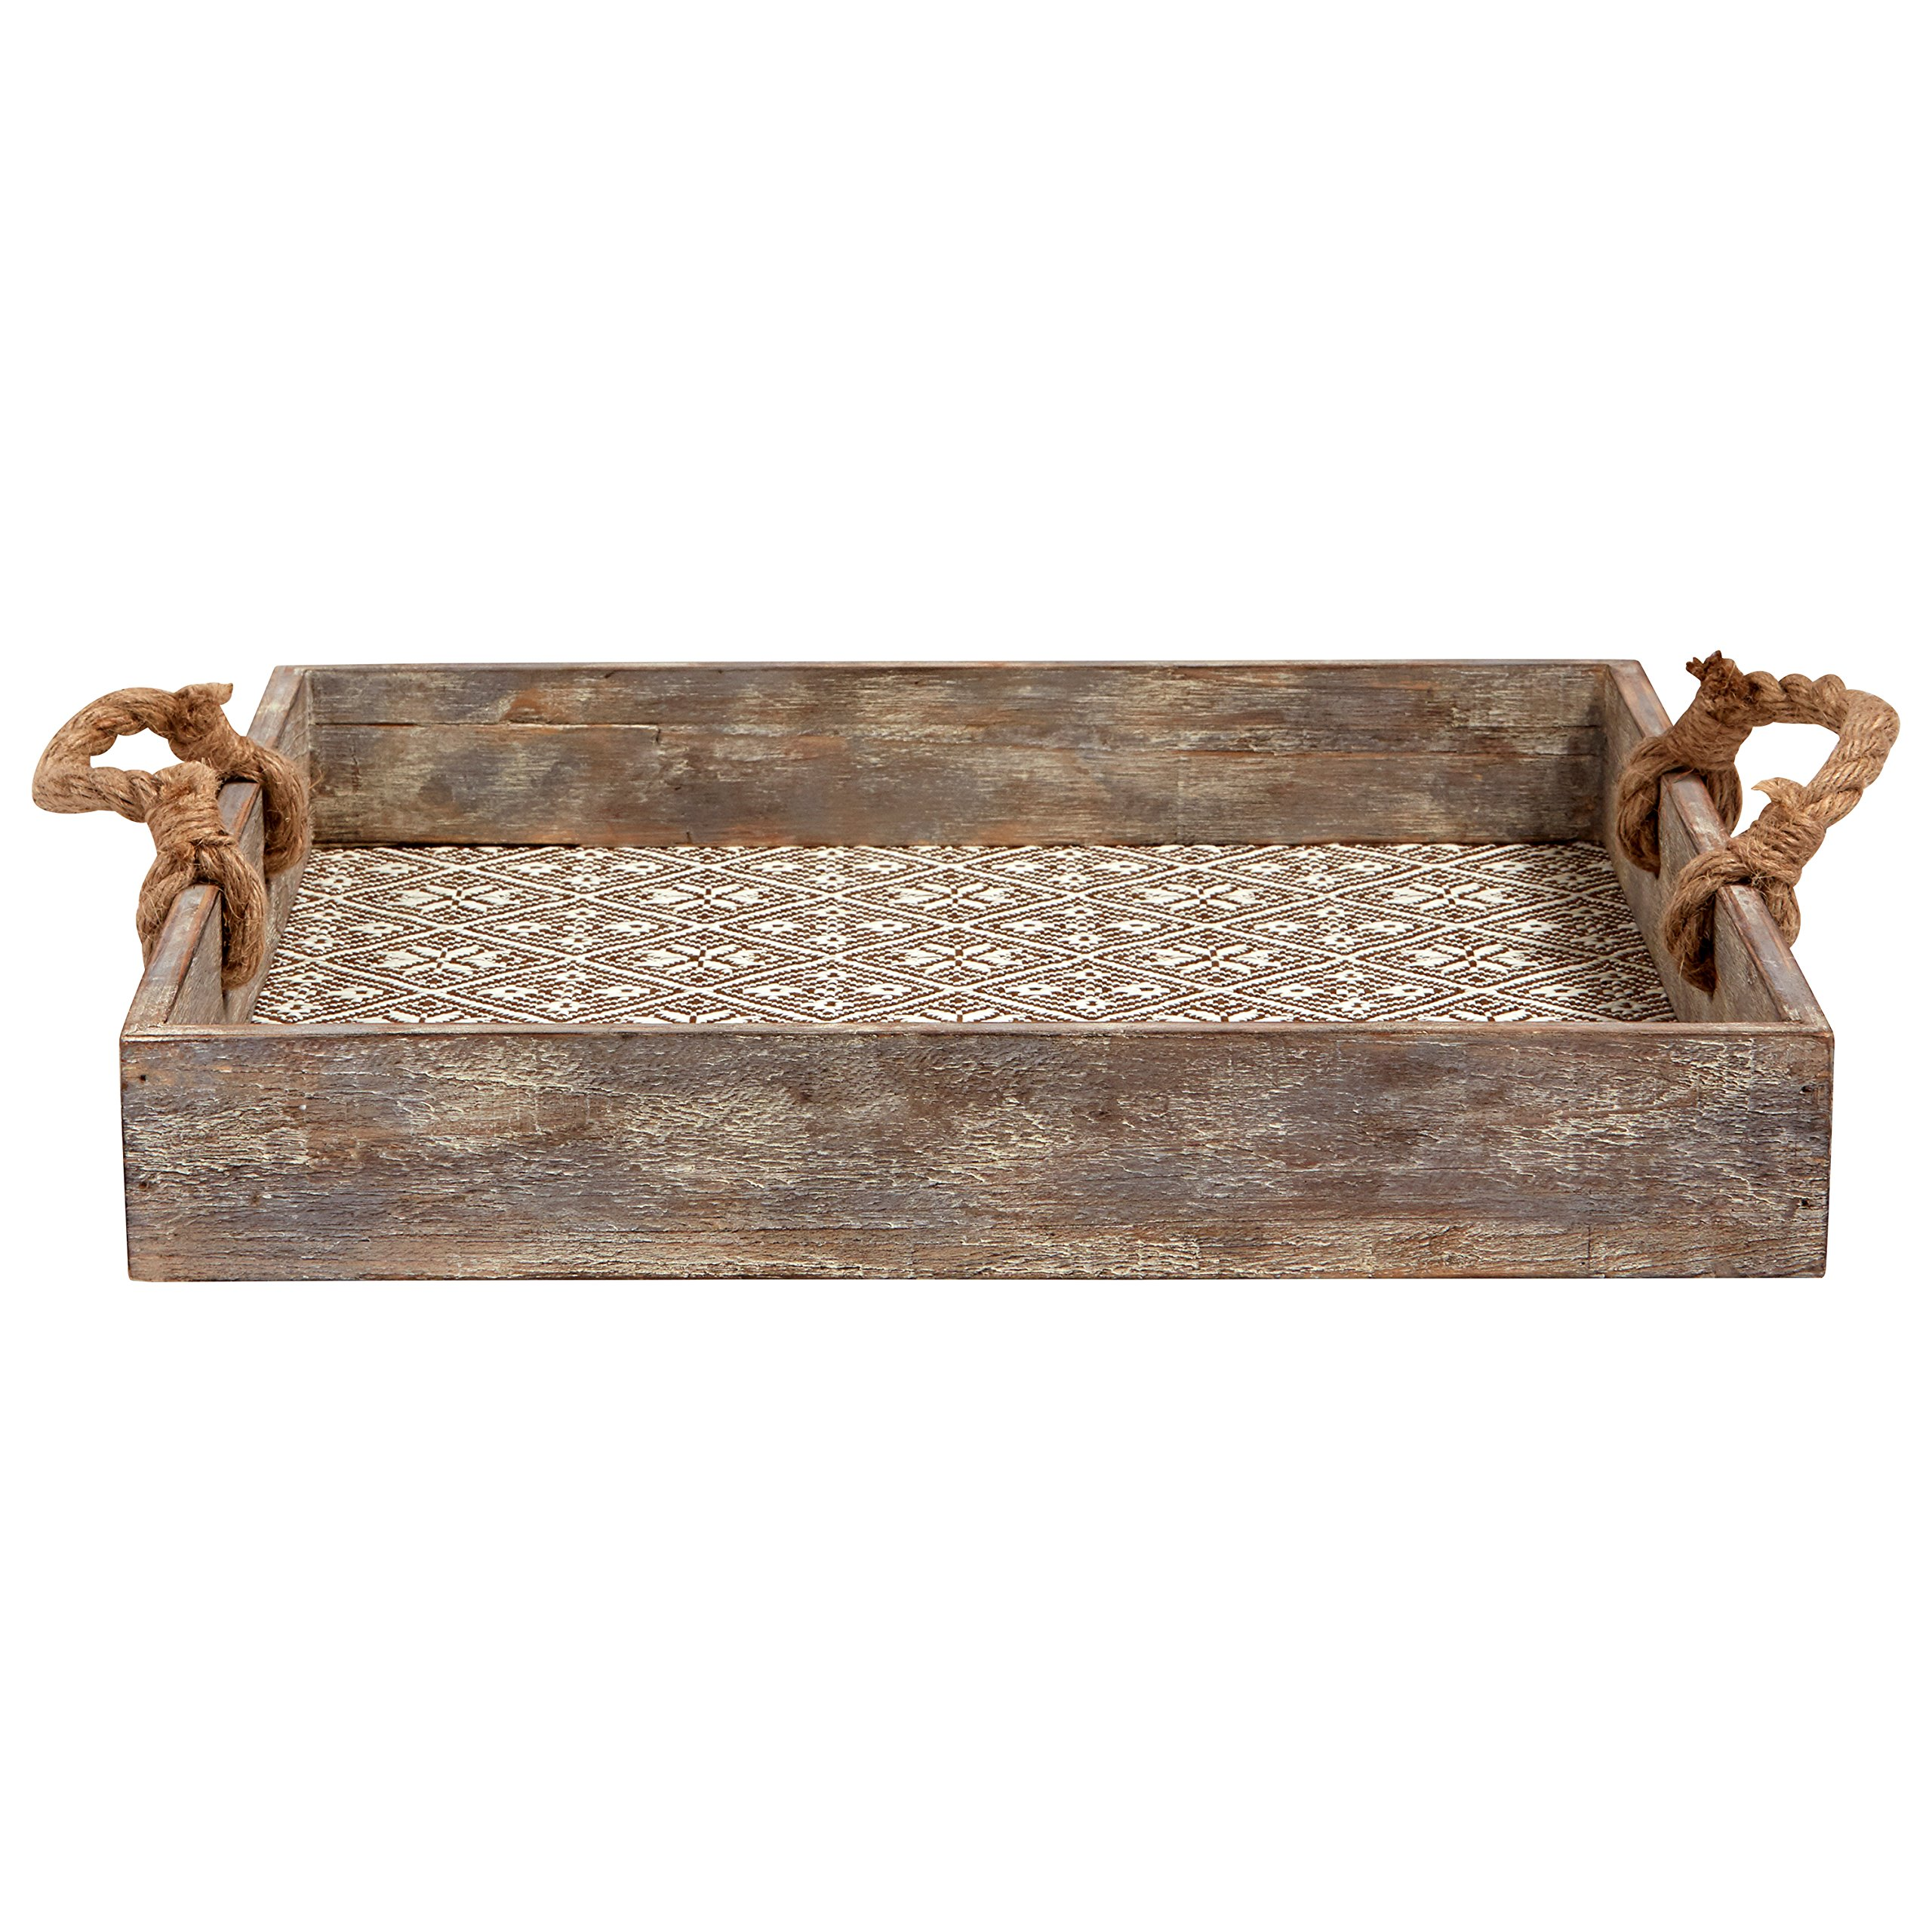 Stone & Beam Vintage Farmhouse Wood and Rope Tray, 15.75''W, White by Stone & Beam (Image #4)